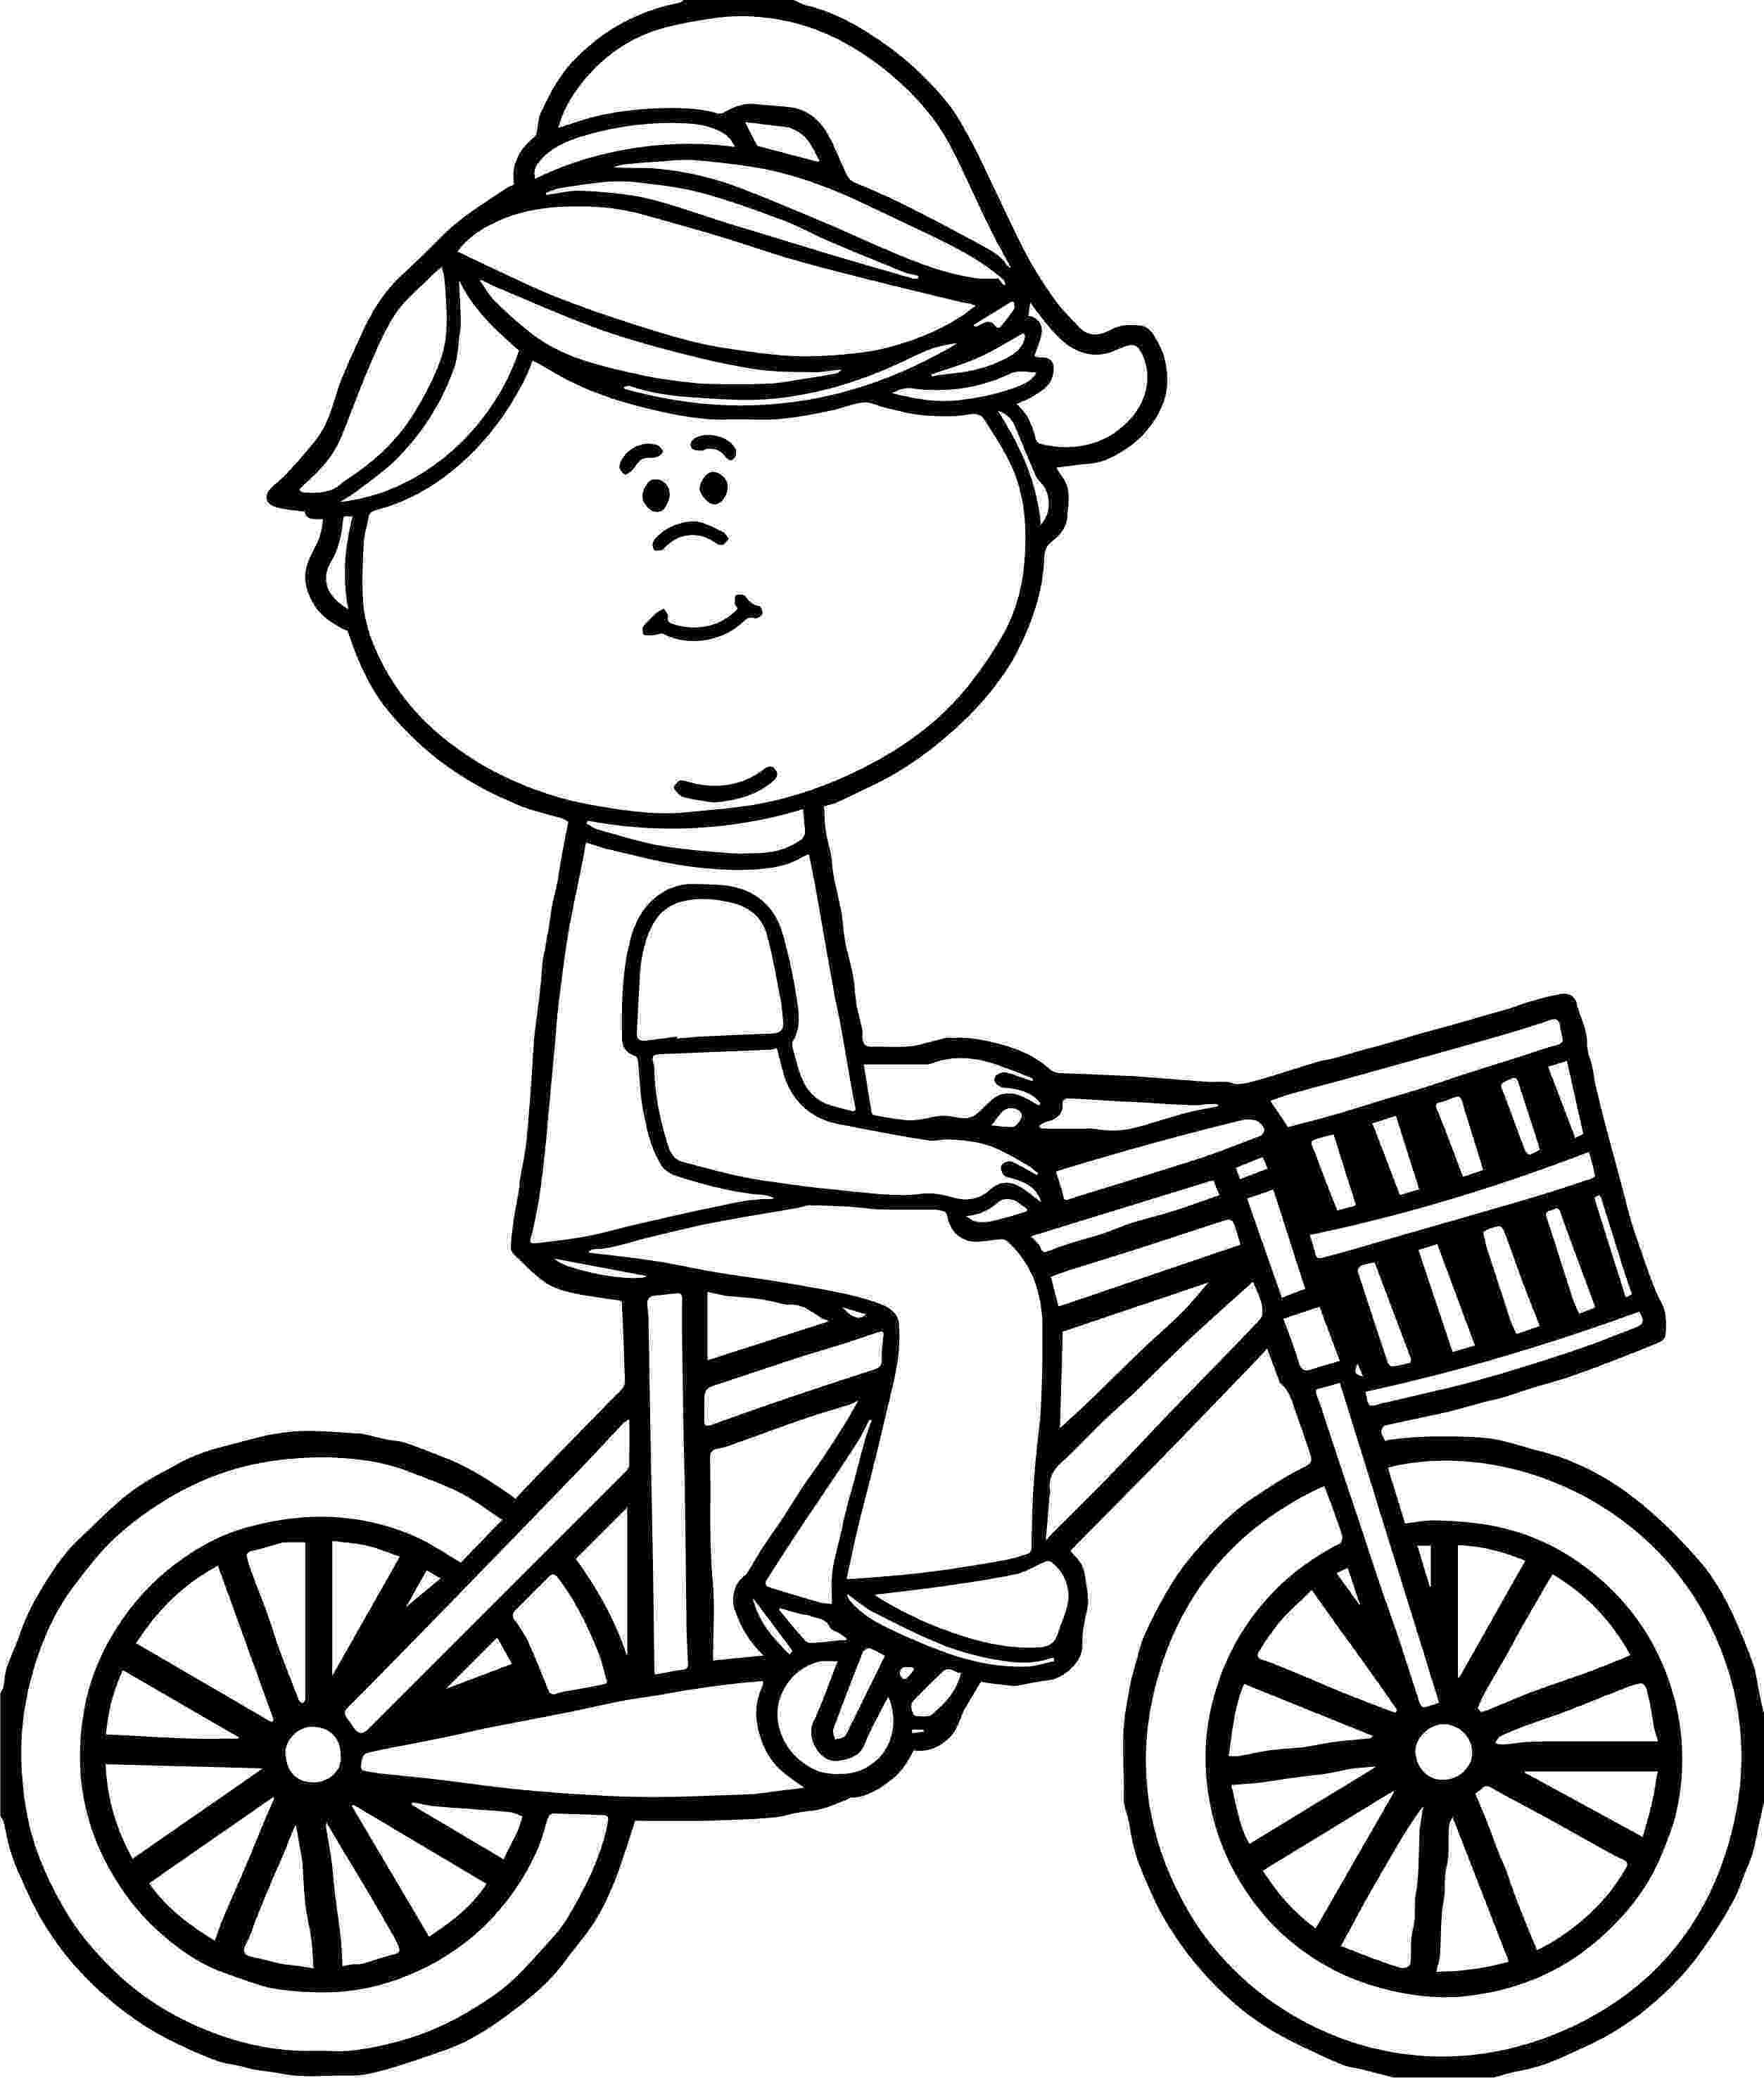 bike coloring pages duck on a bike coloring sheet coloring pages coloring bike pages